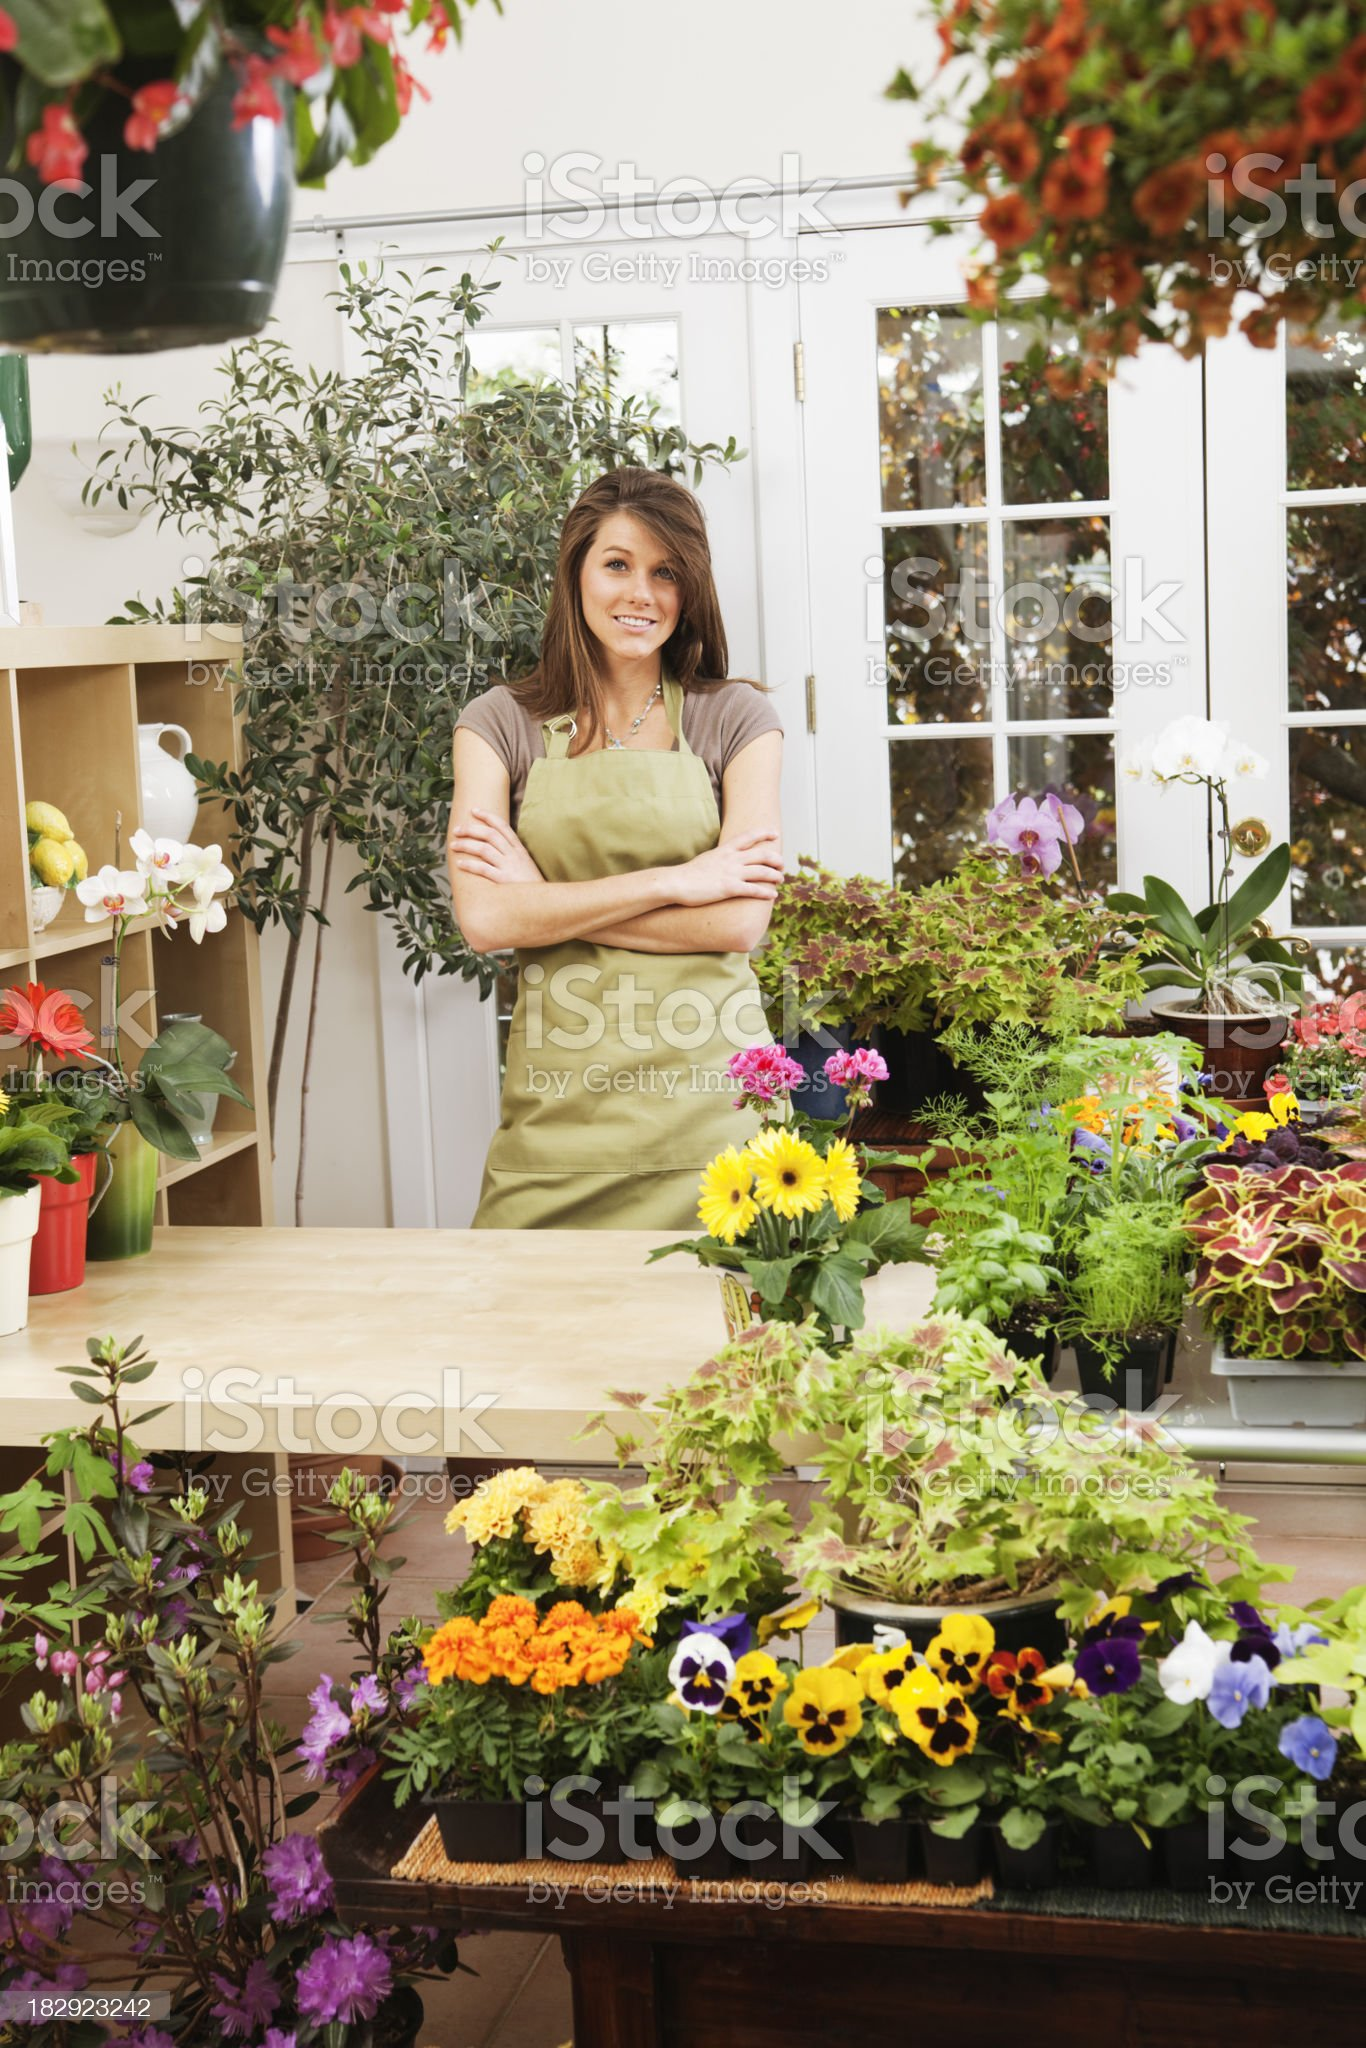 Woman Shop Owner of Small Business Retail Flower Store Vt royalty-free stock photo